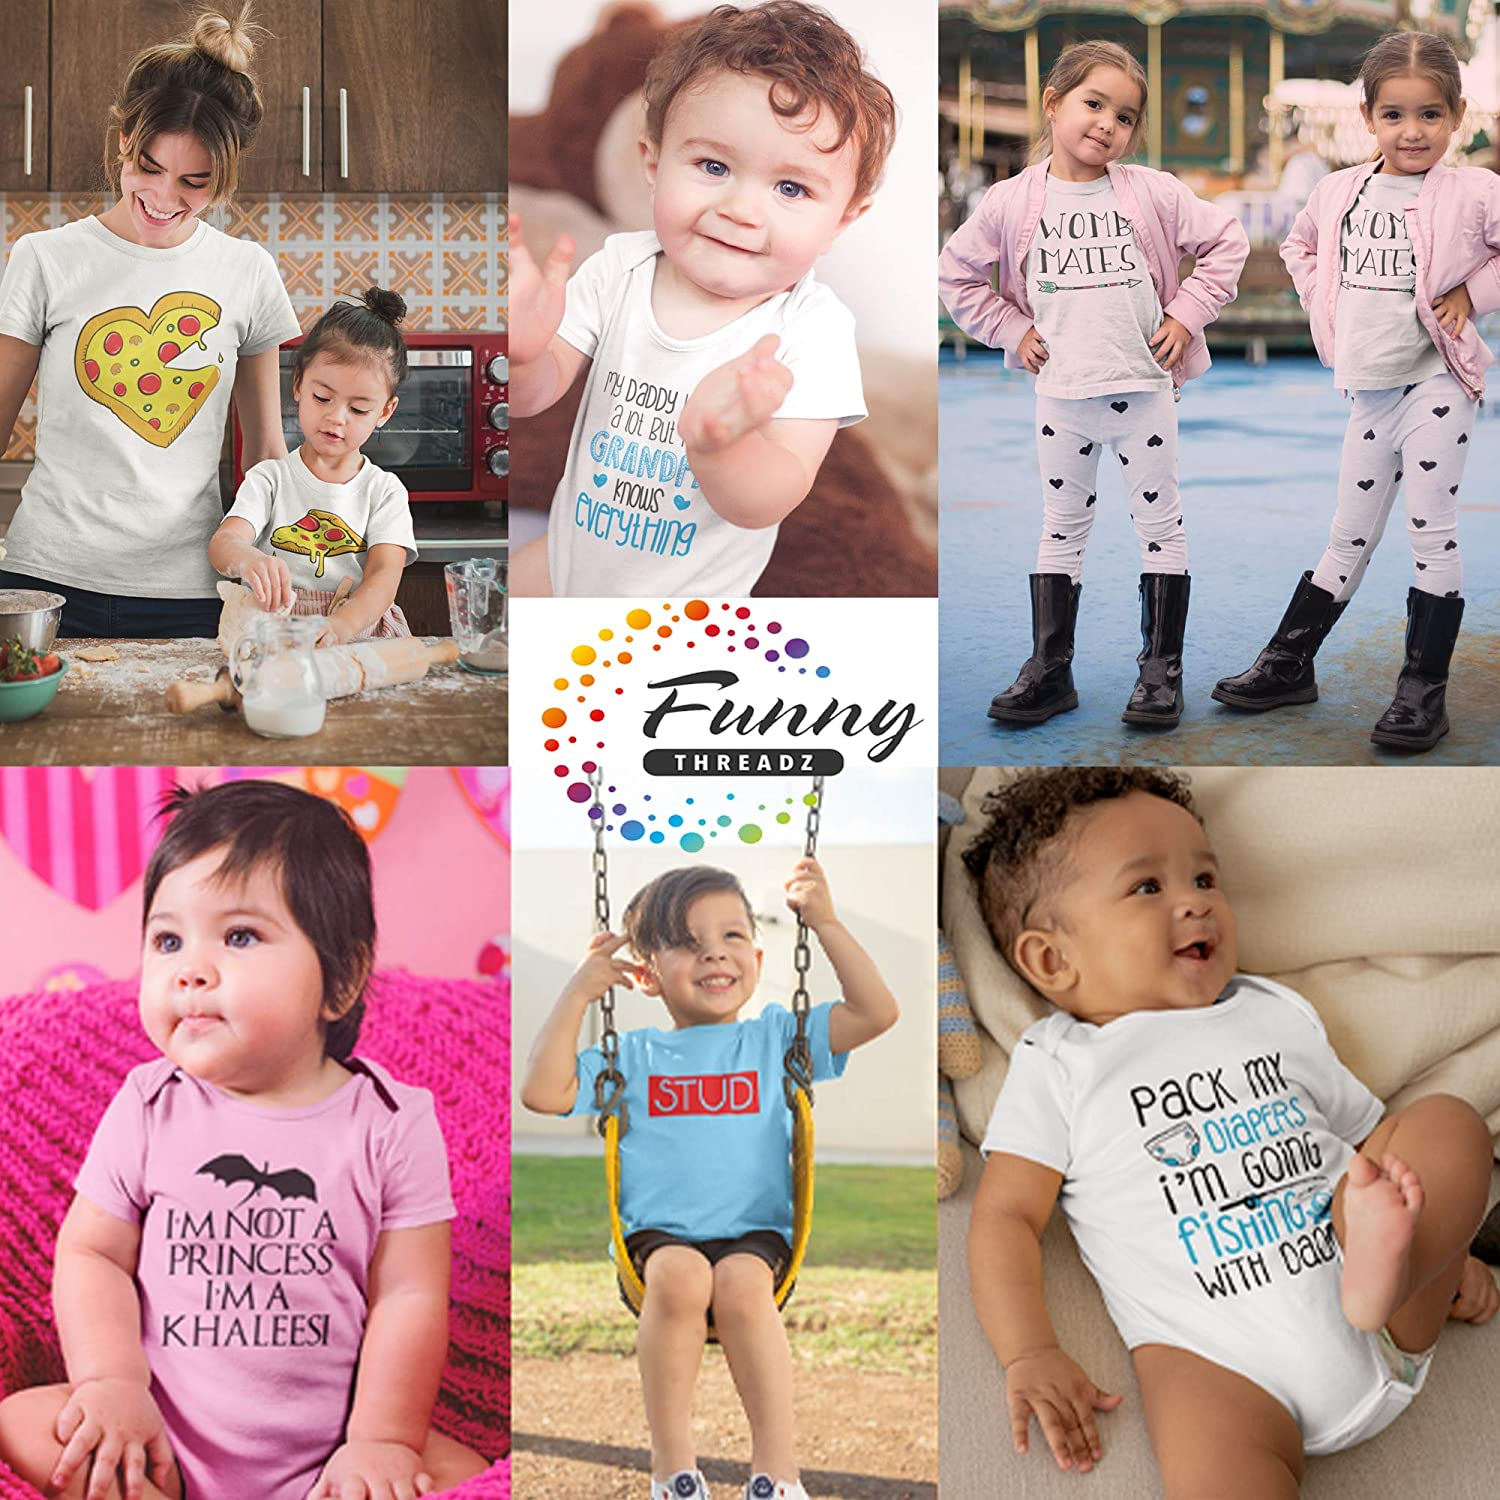 """Newborn Baby Twin Onesie Set of 2 /""""Womb Mates/"""" Boys or Girls Kids Matching Shirt Set Twin Outfit Set of 2 Rompers"""